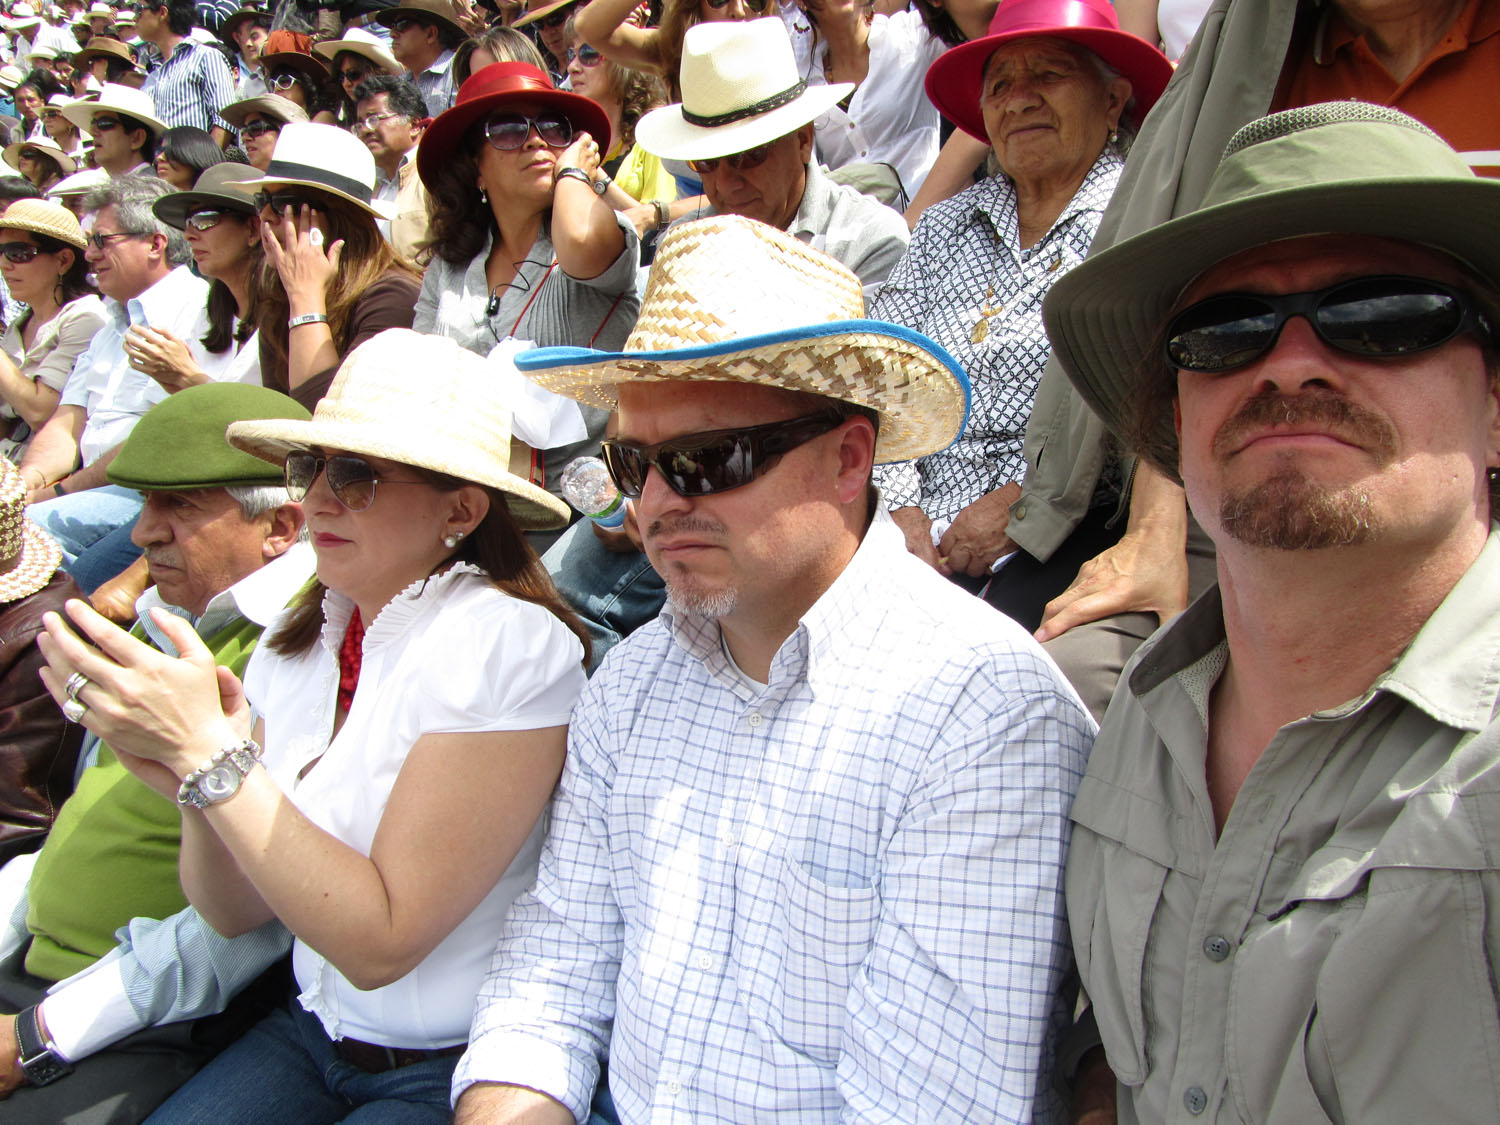 Ecuador-Quito-Bullfight-Frank-Amongst-Crowd